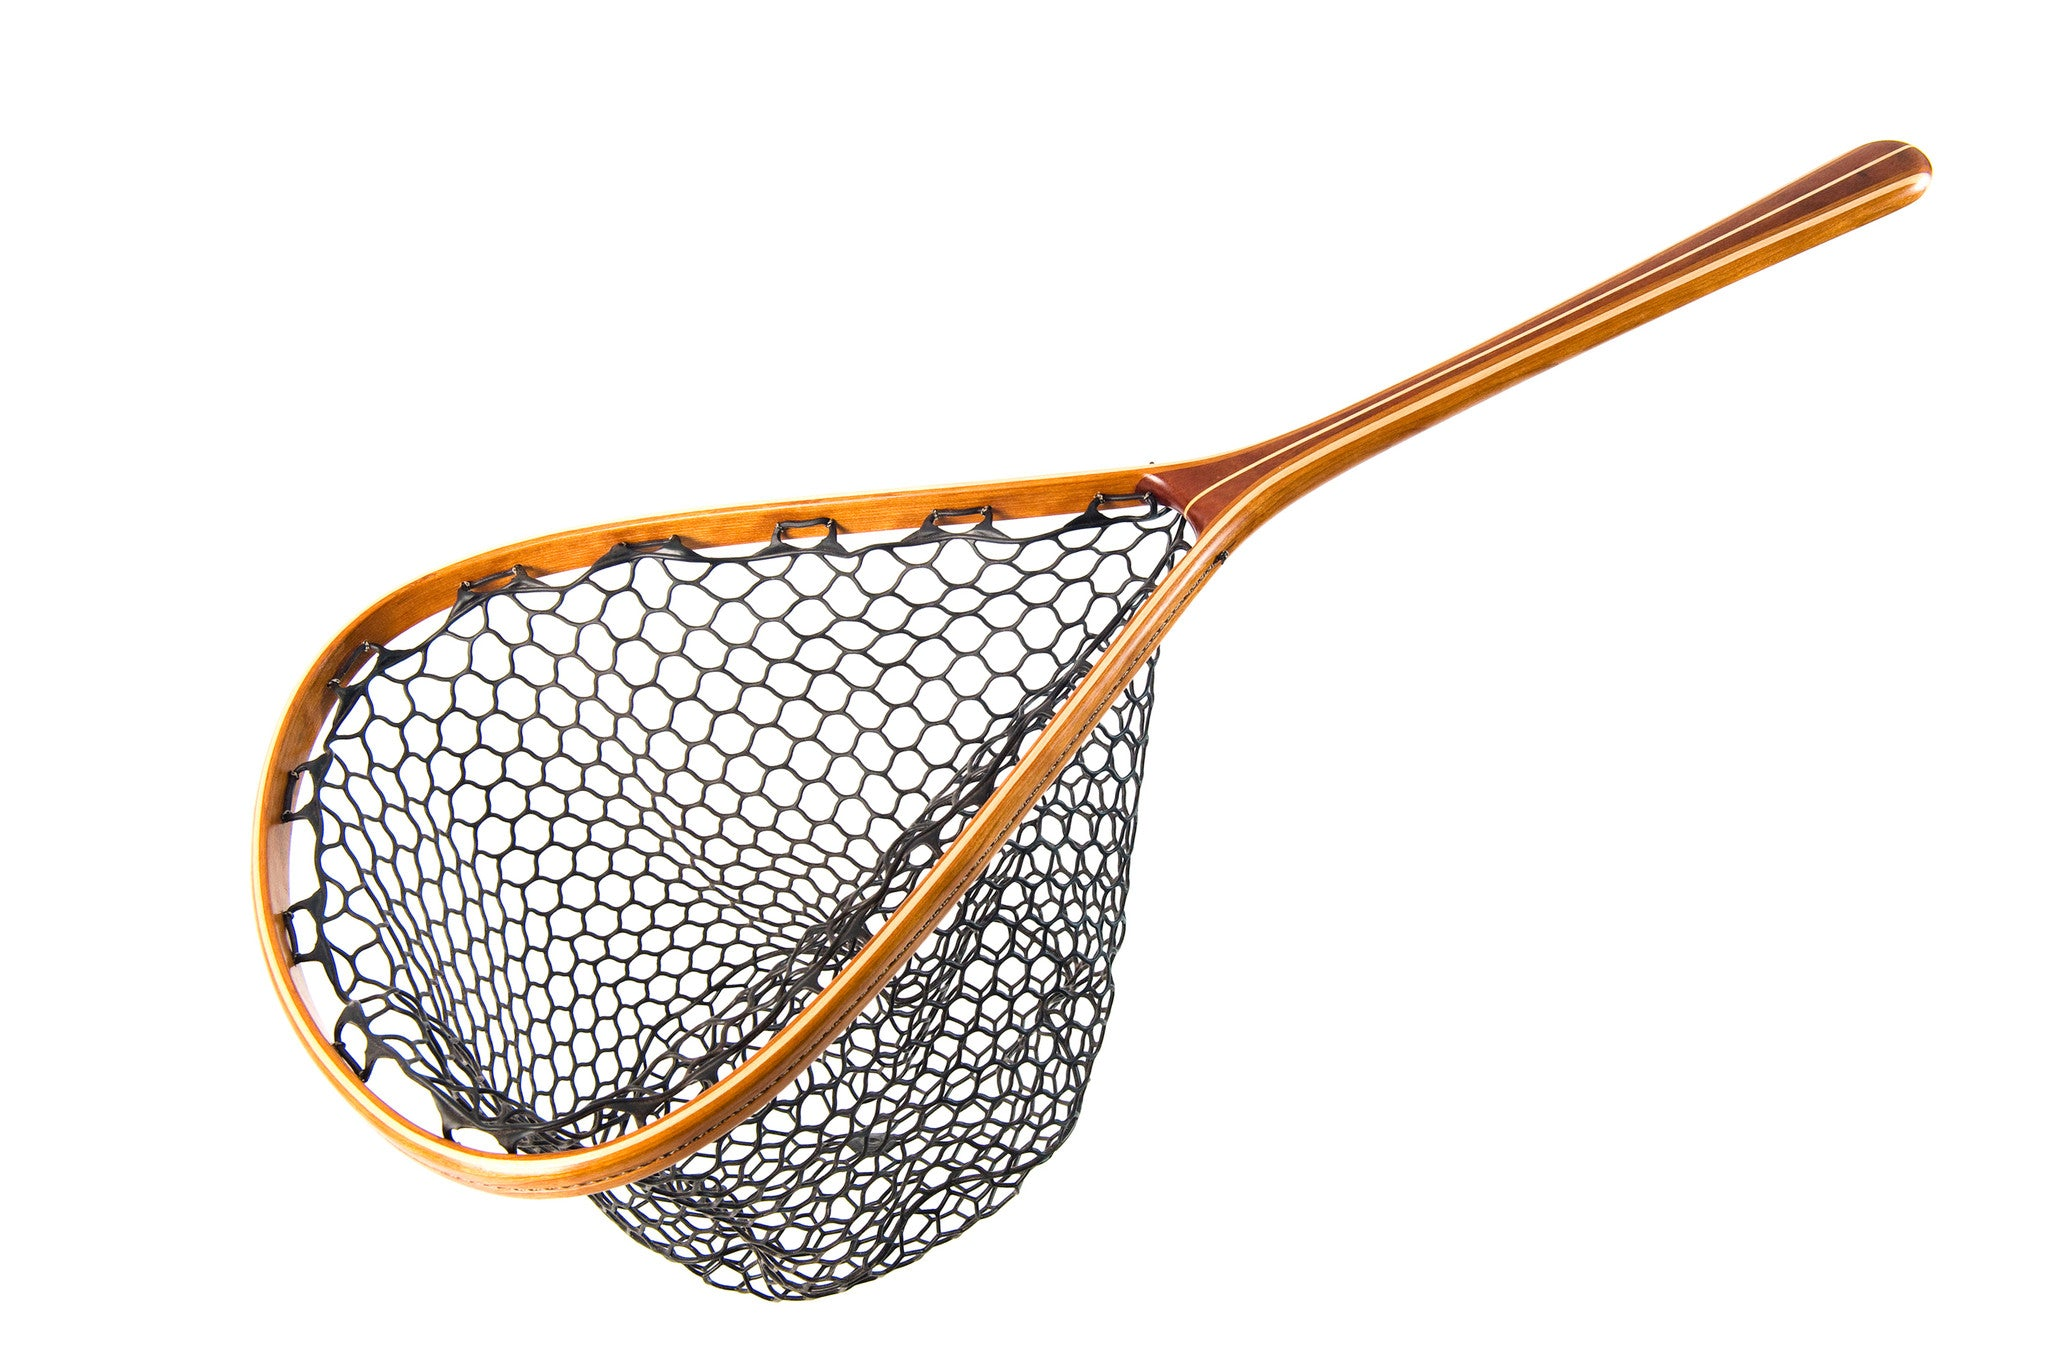 Crow river net. Tailwater Outdoors premium quality classic style fishing nets, handmade from high quality woods. Ideal for all fishing and outdoor enthusiasts.